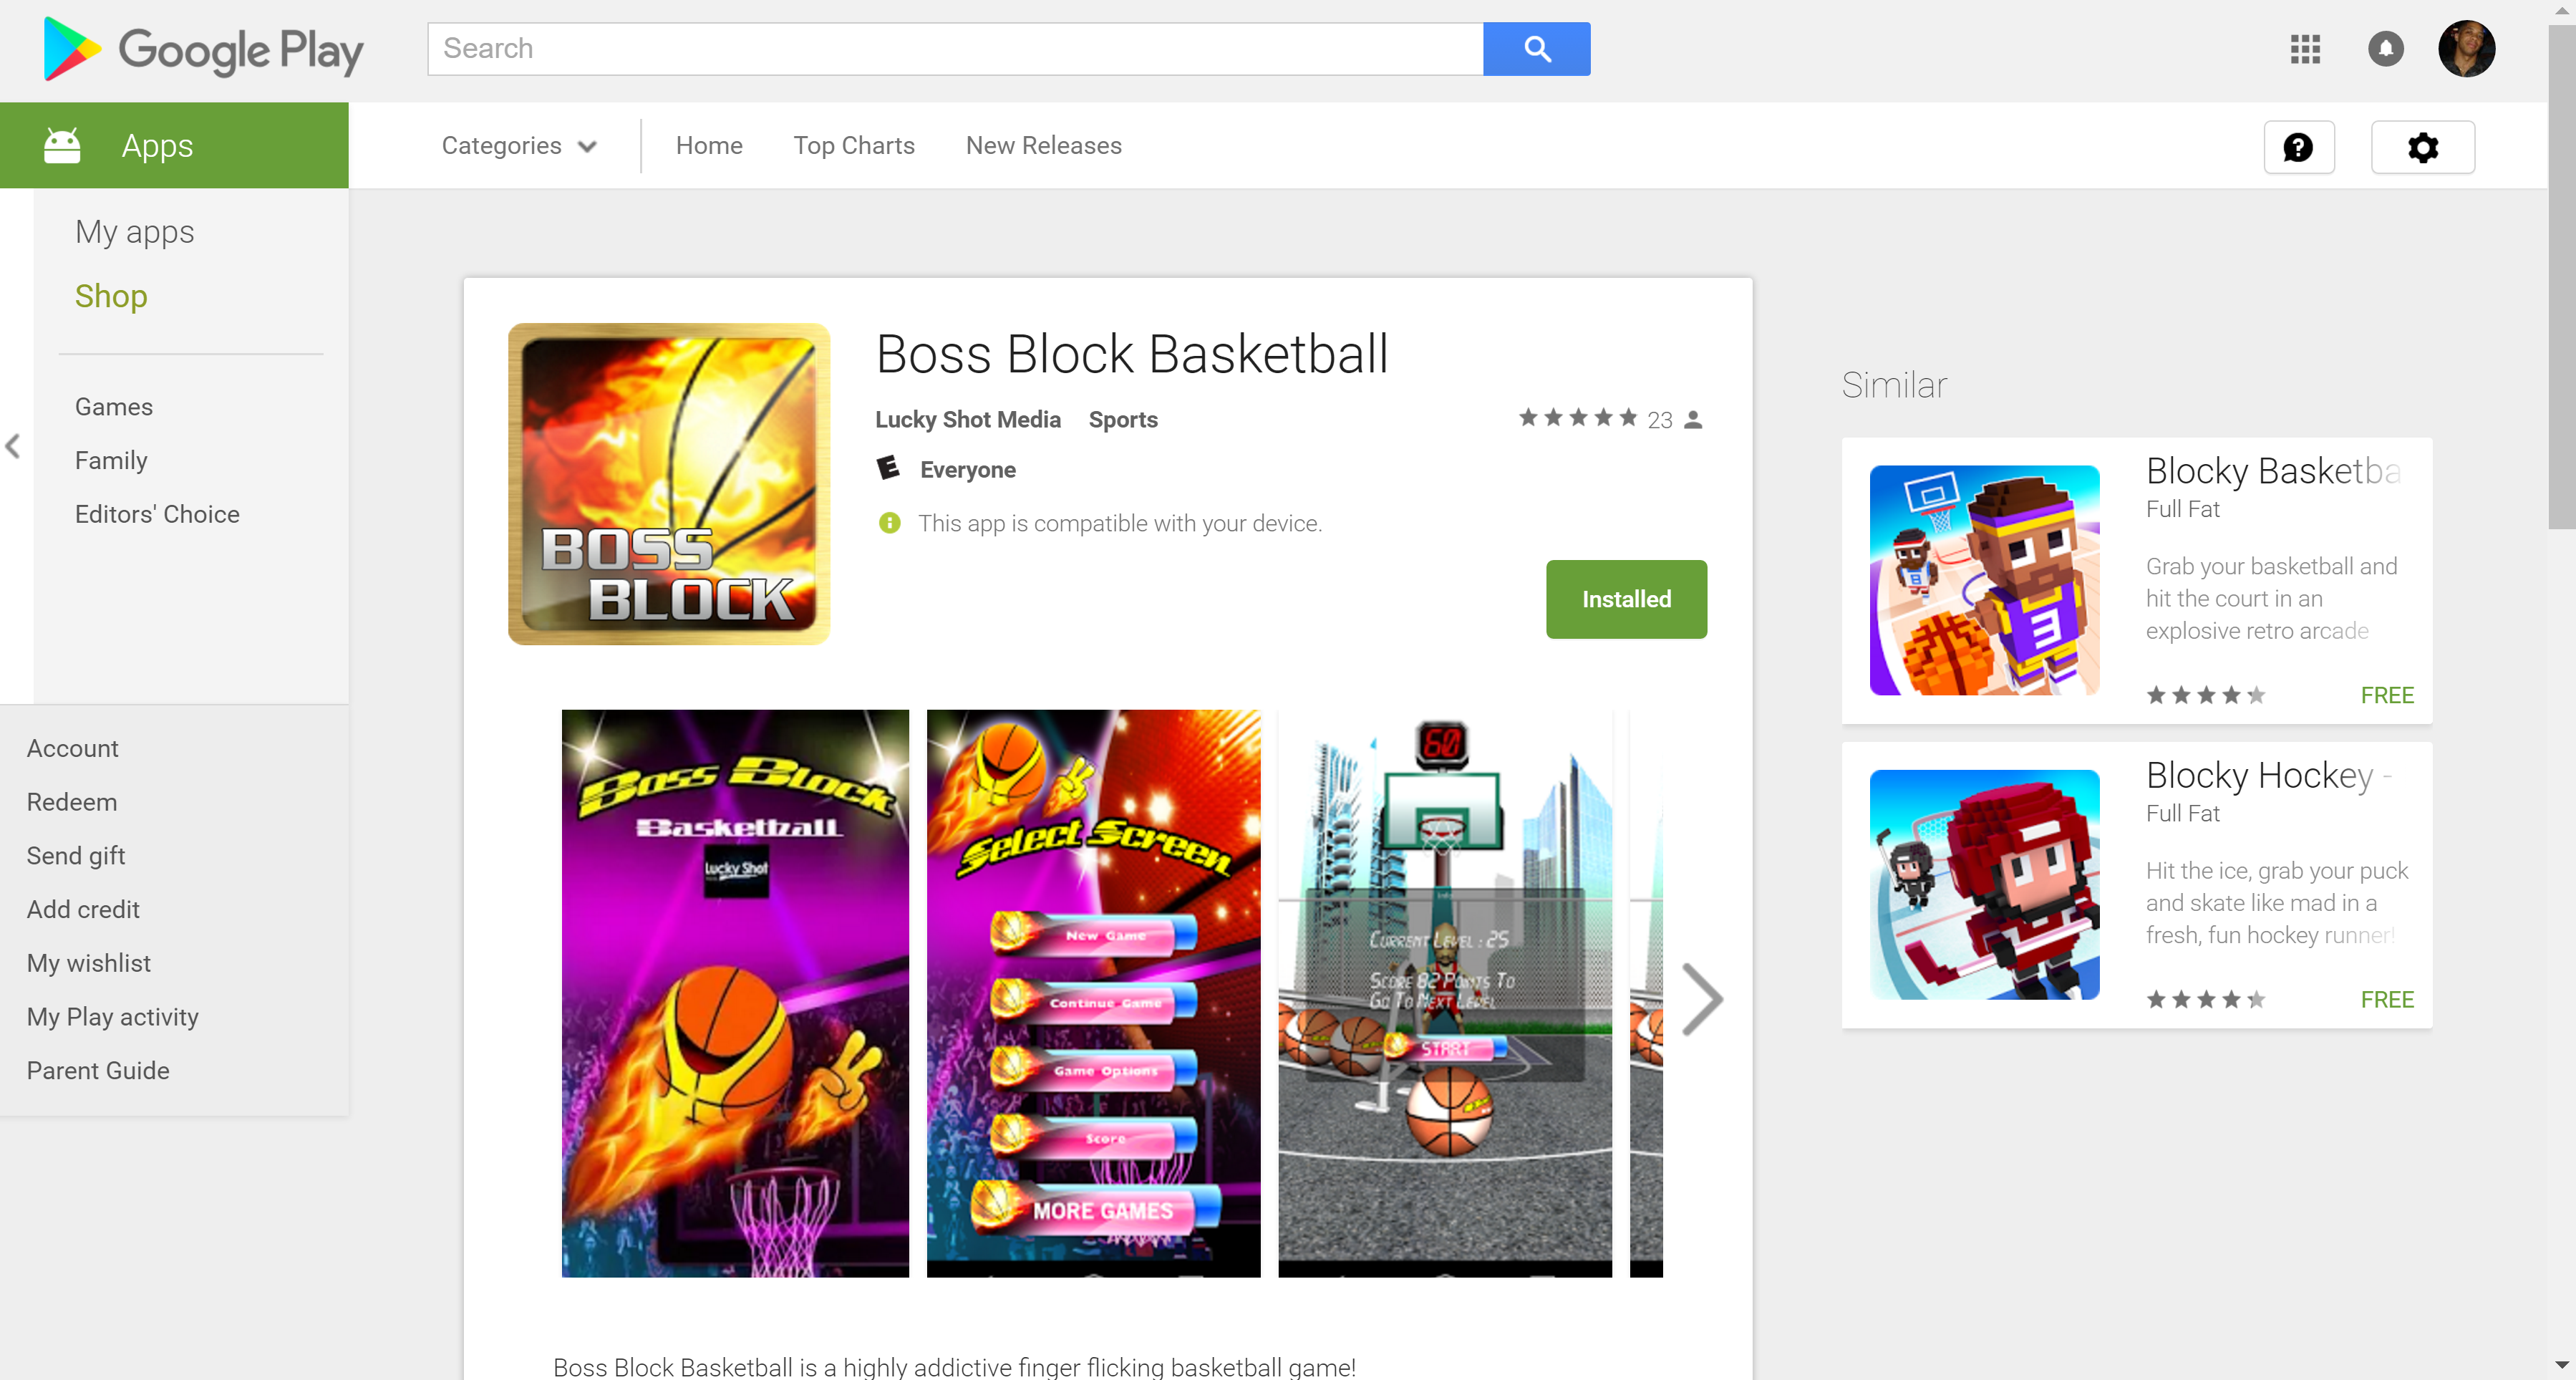 Boss Block Basketball